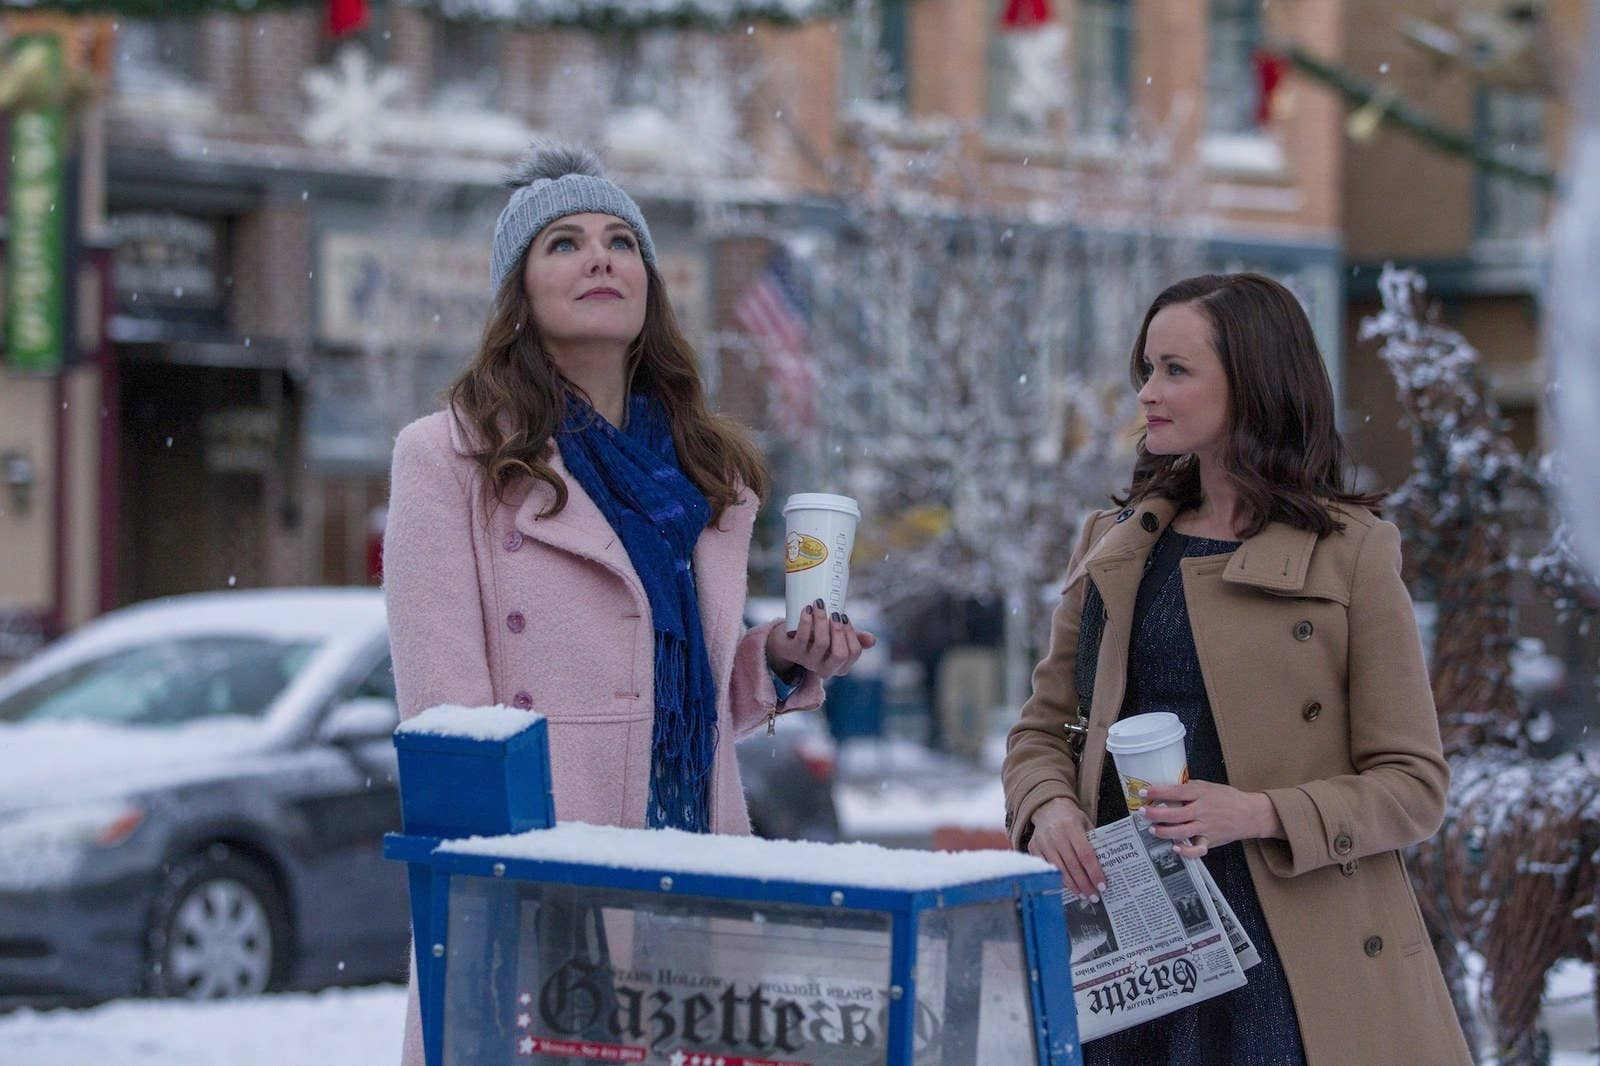 The full story behind how the gilmore girls theme song came to be lorelai lauren graham left and rory alexis bledel in the gilmore ccuart Image collections